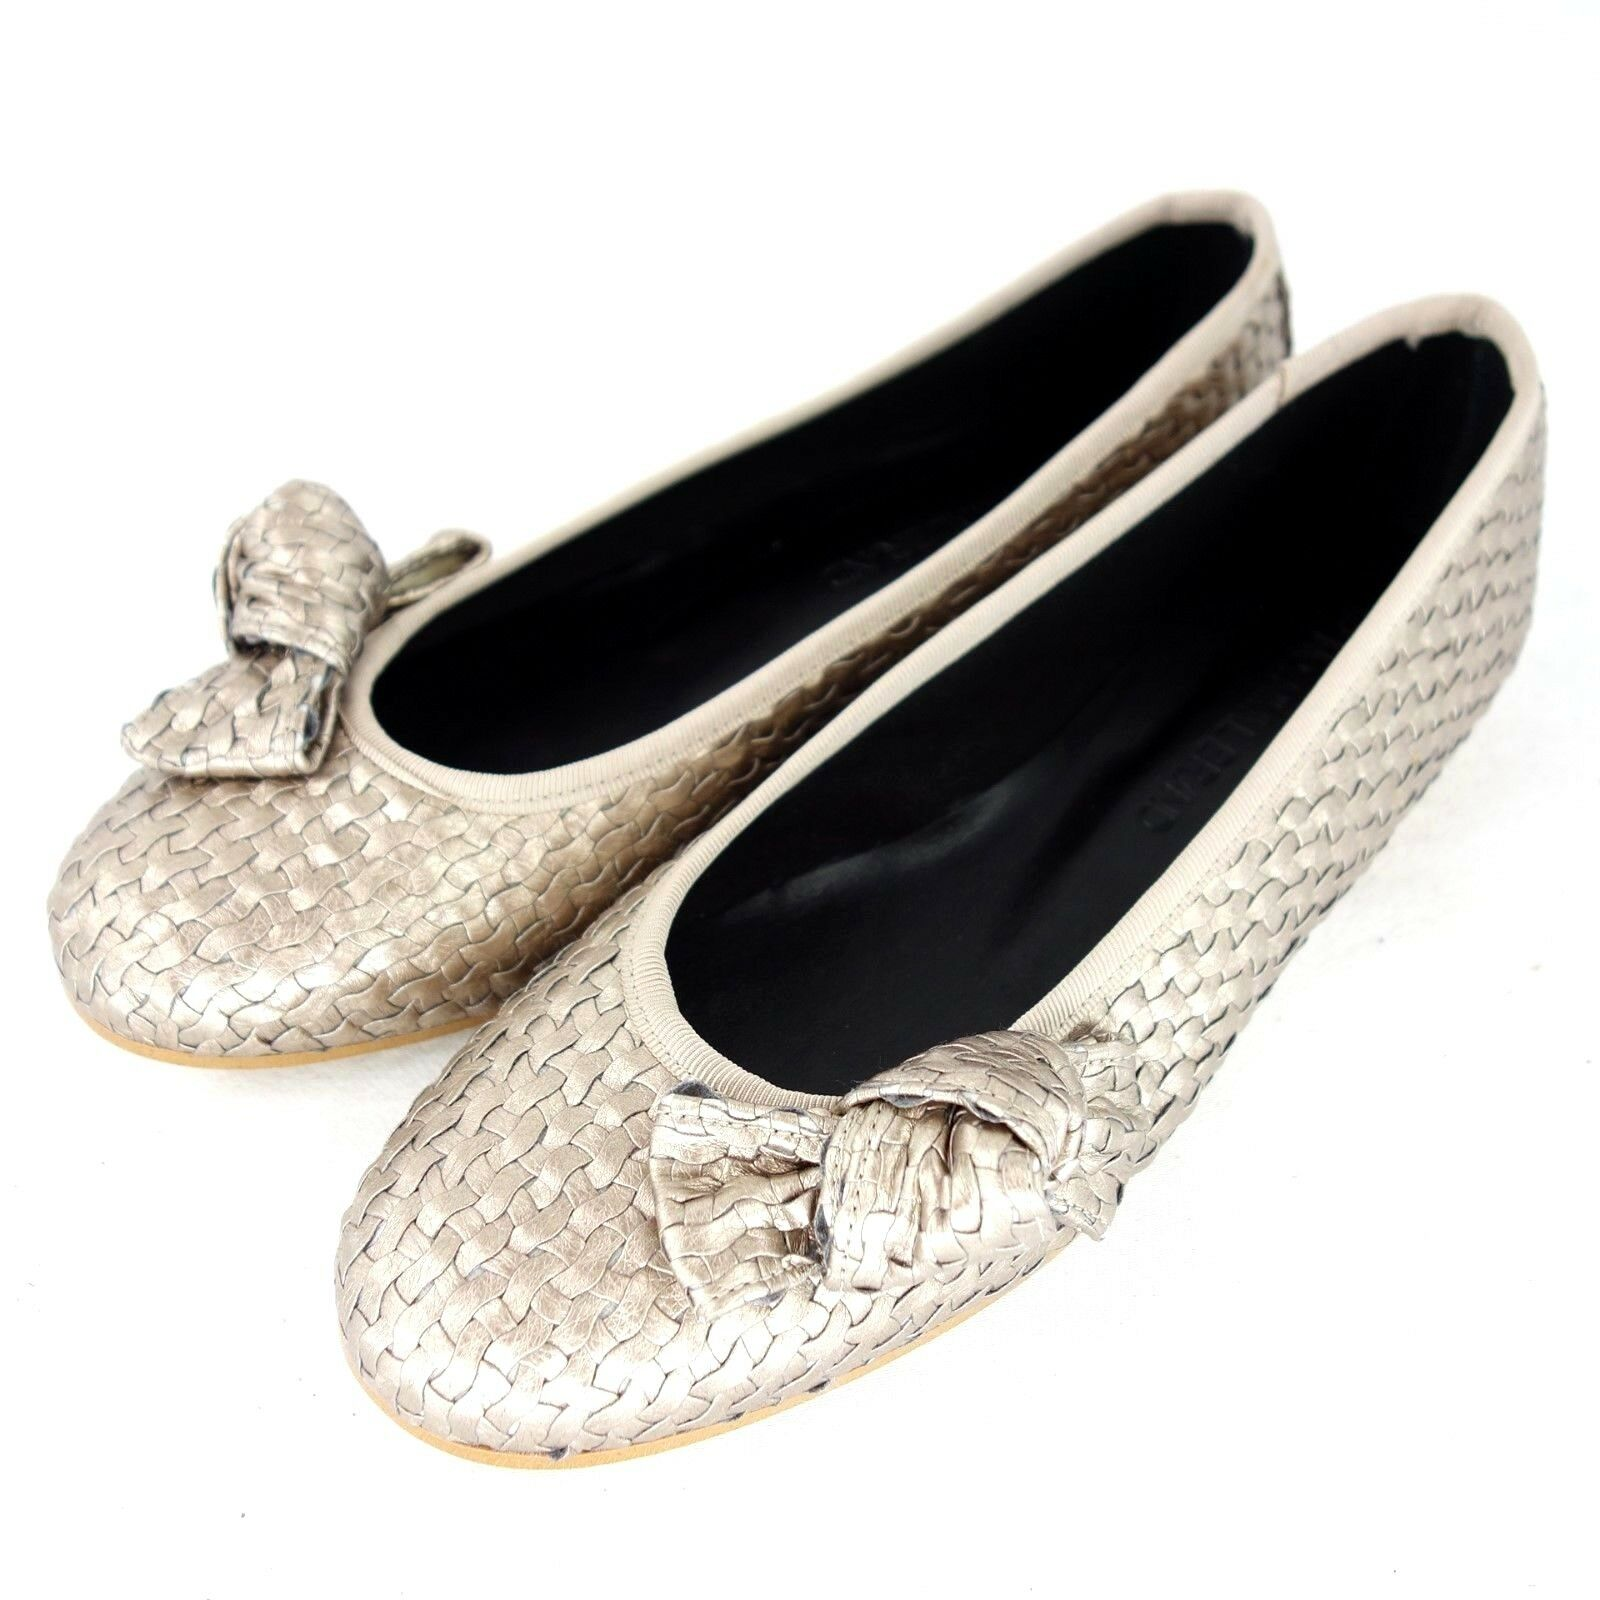 THE NO ANIMAL BRAND Damen Ballerinas Schuhe WAIKA 36 37 38 Geflochten NP 179 NEU